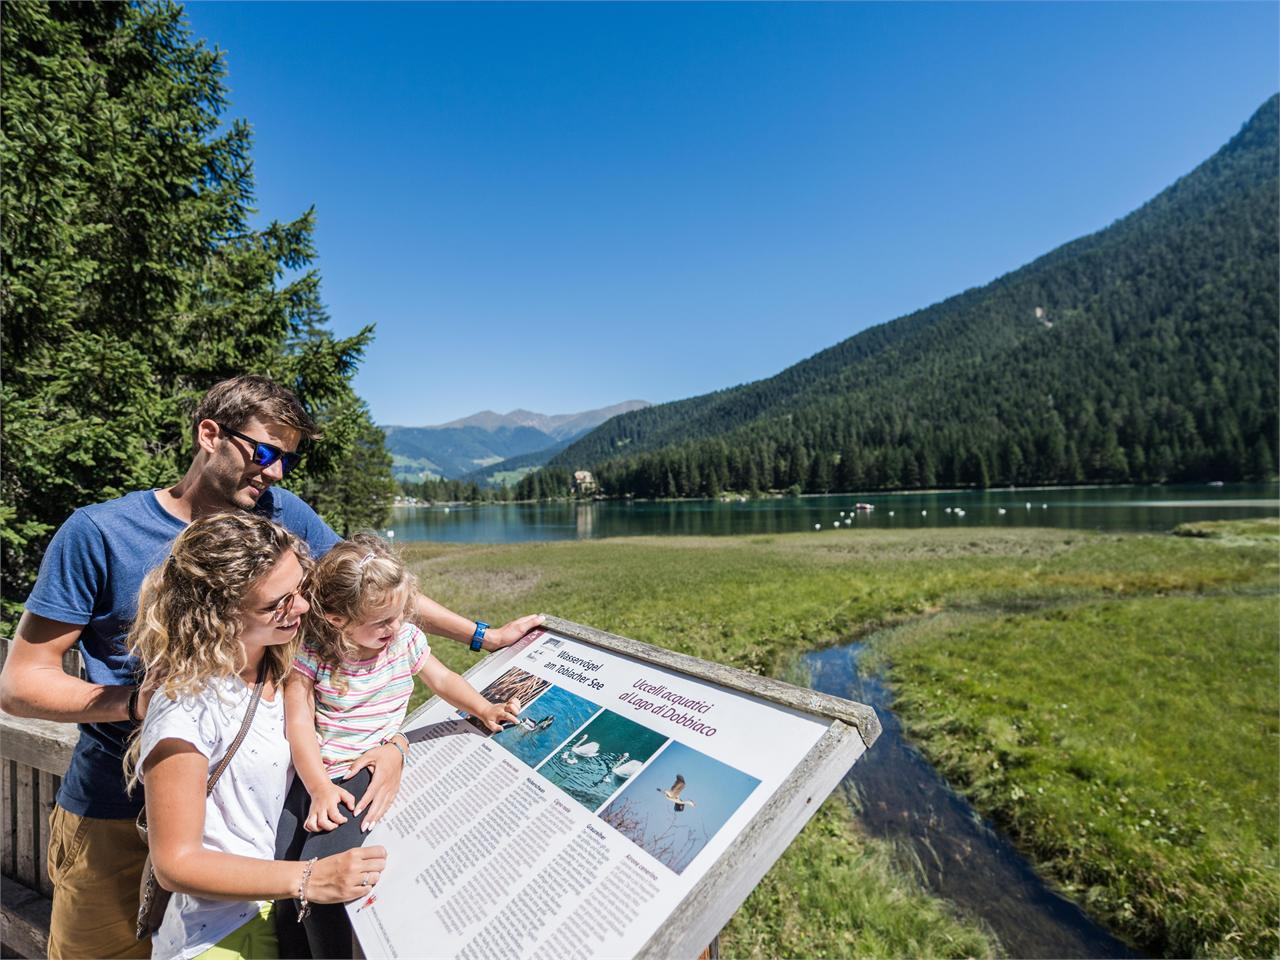 Family walking tour: Neutoblach- Lake of Toblach- Nature Educational Trail - Dobbiaco/Toblach